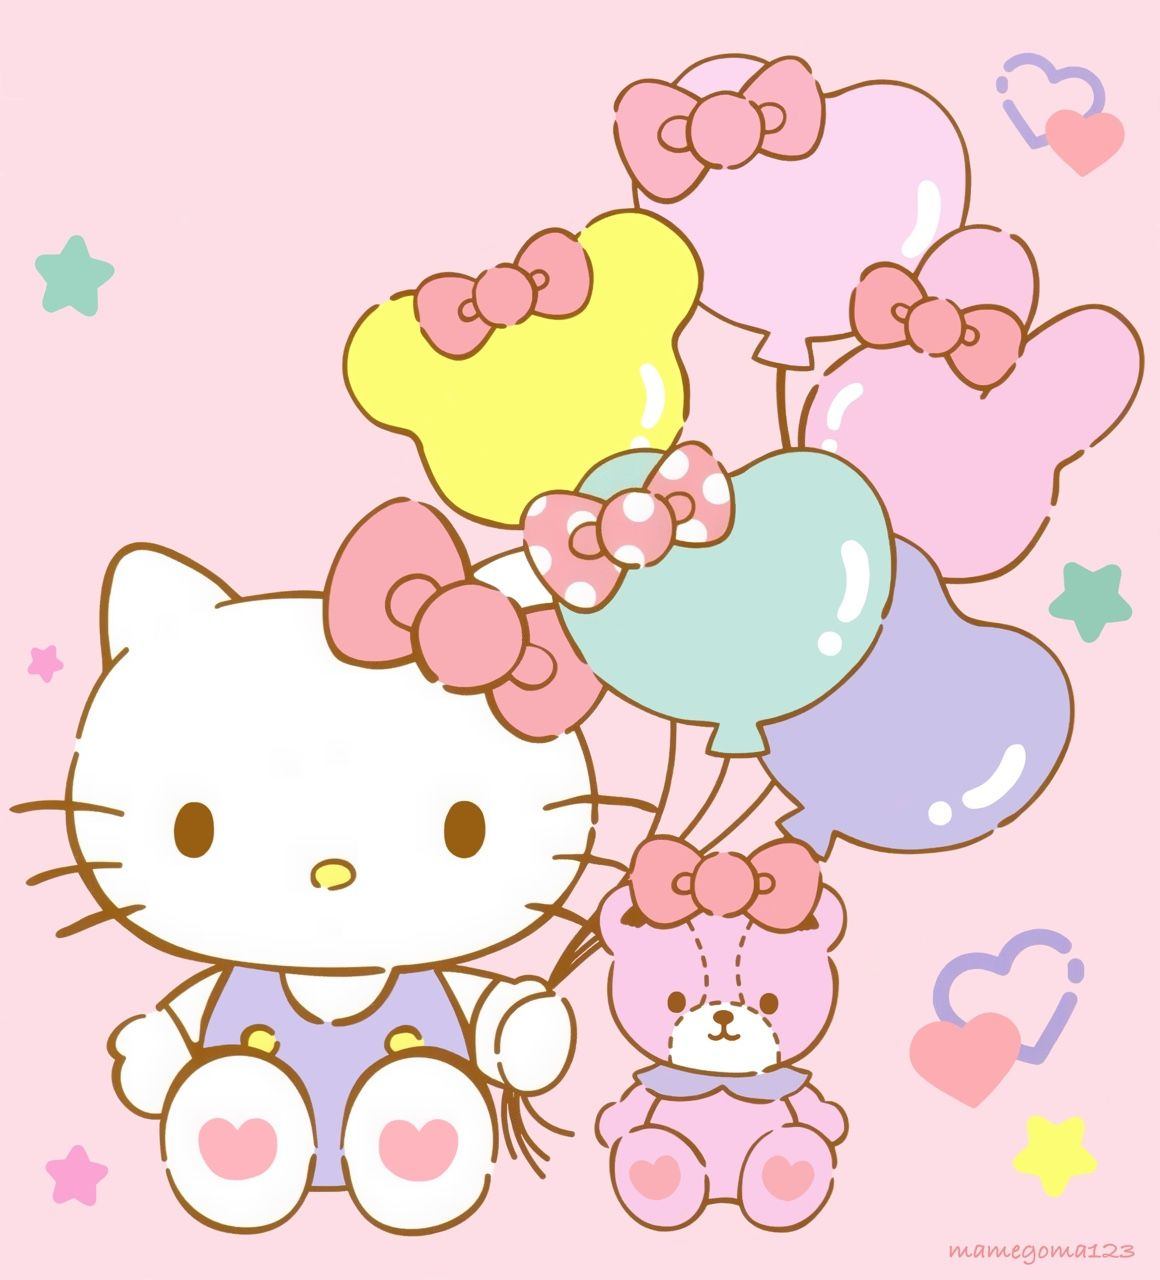 Kawaii shop kawaii cute pinterest - Coloriage hello kitty ...